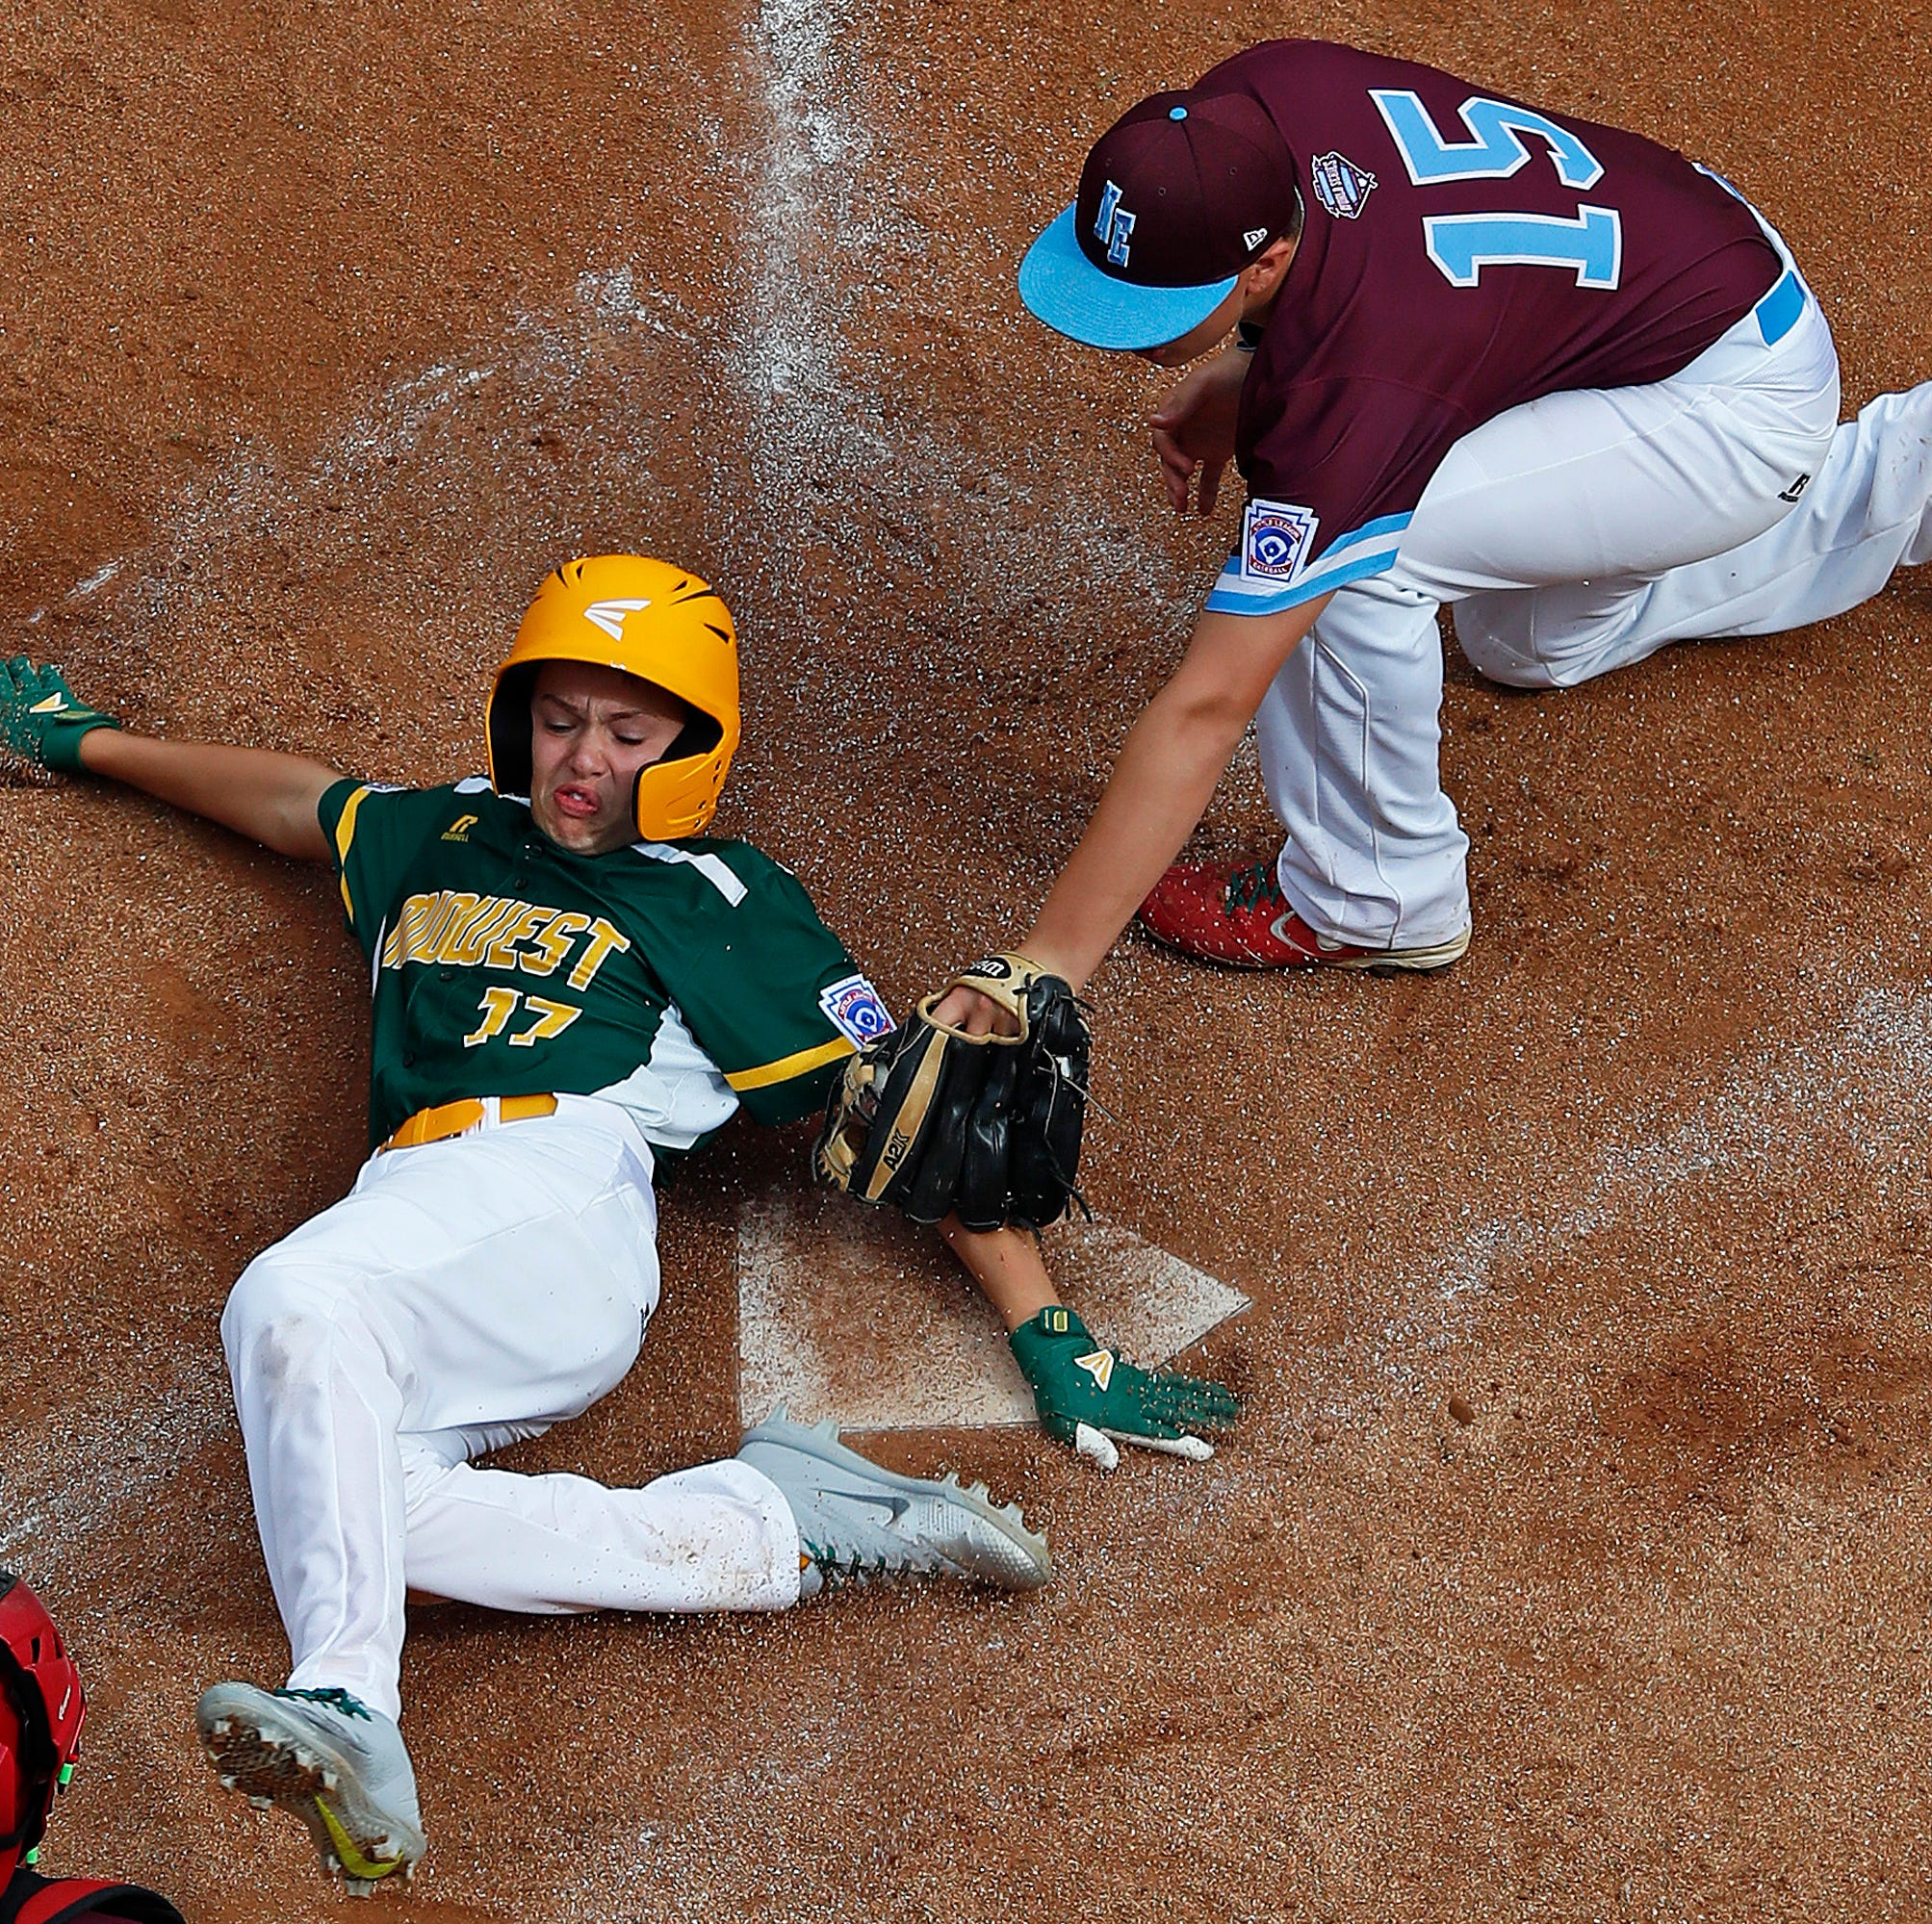 Little League World Series: Grandview team rallies in elimination game, stays alive for title contention